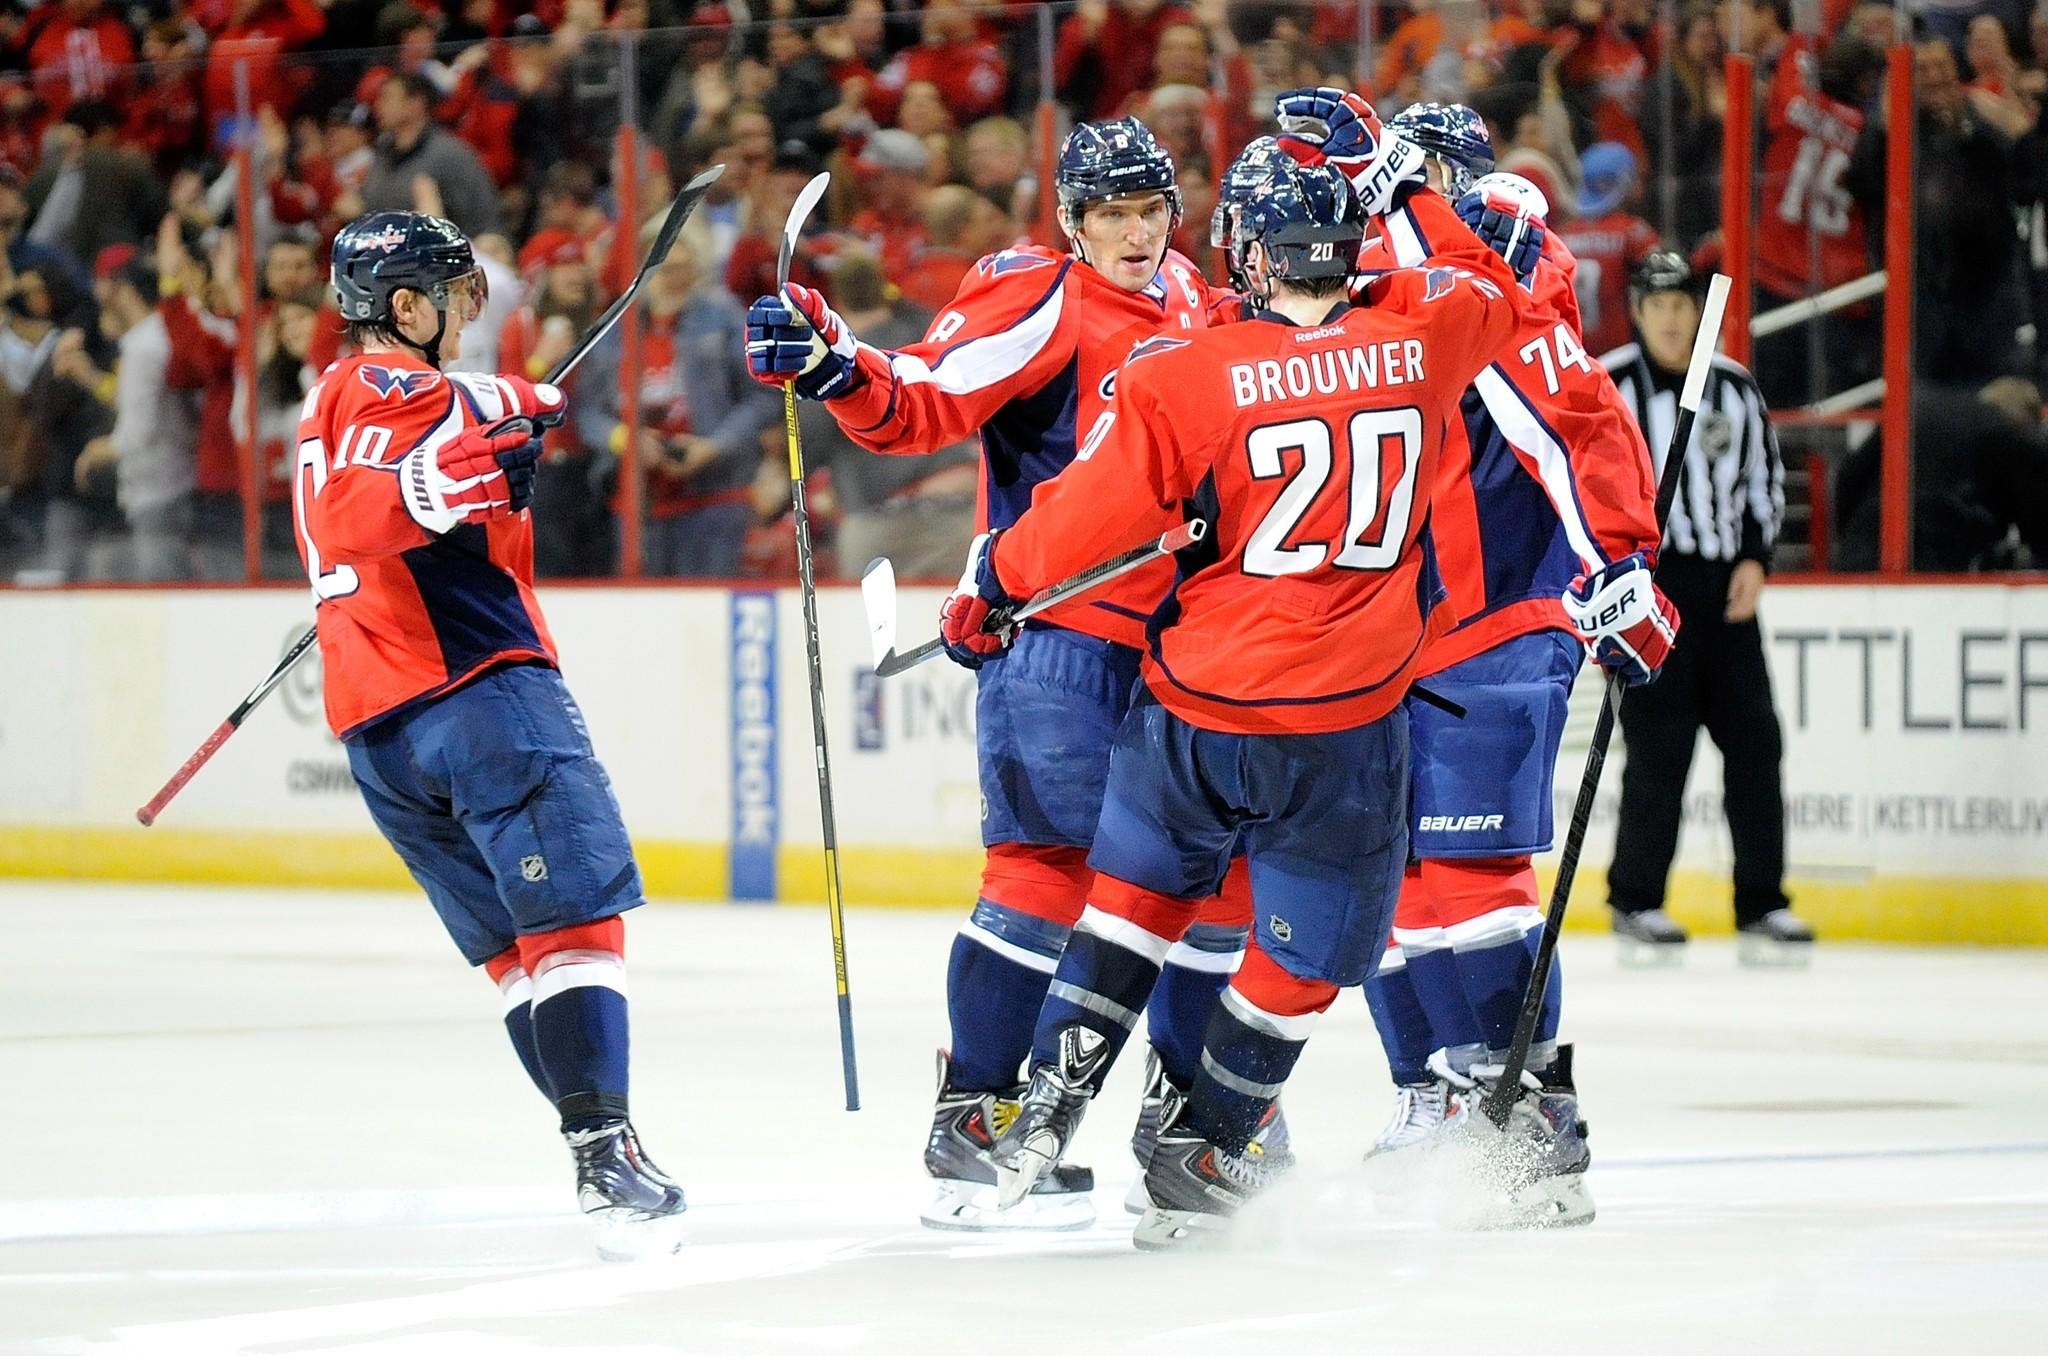 WASHINGTON, DC - FEBRUARY 02: Alex Ovechkin #8 of the Washington Capitals celebrates with teammates after scoring the game winning goal in overtime against the Detroit Red Wings at Verizon Center on February 2, 2014 in Washington, DC. Washinton won the game 6-5. (Photo by Greg Fiume/Getty Images) ORG XMIT: 181113810